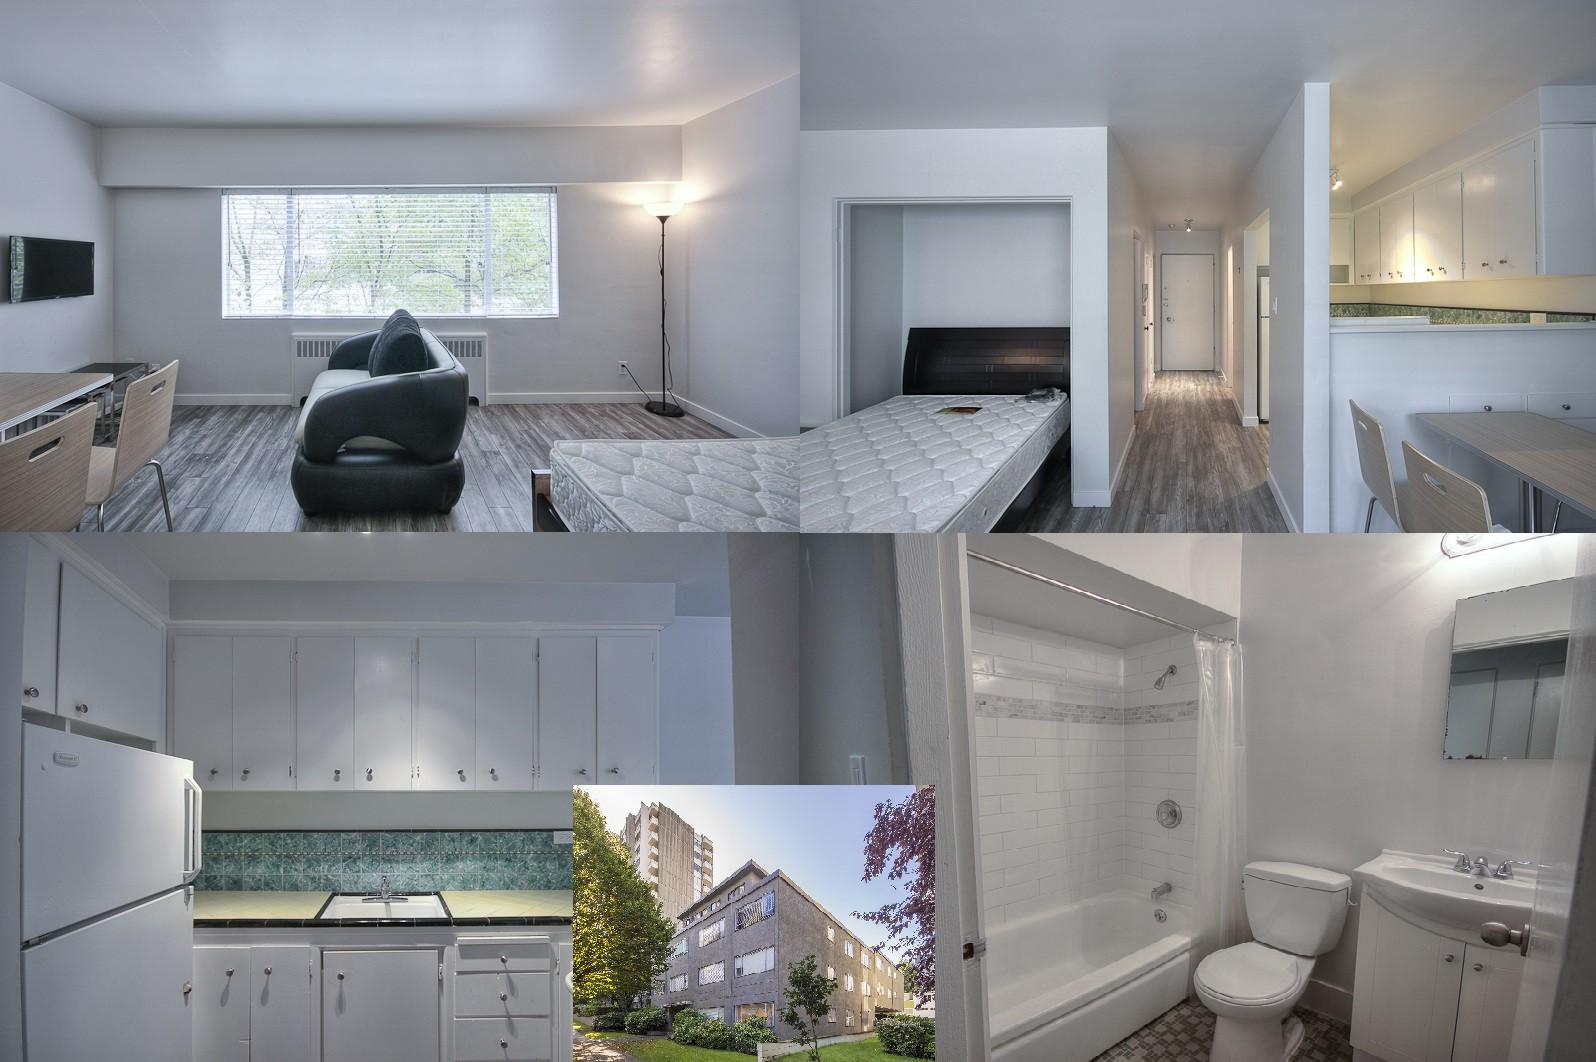 $1600 / 440ft2 - AVAILABLE NOW - Furnished & Renovated Studio photo #1